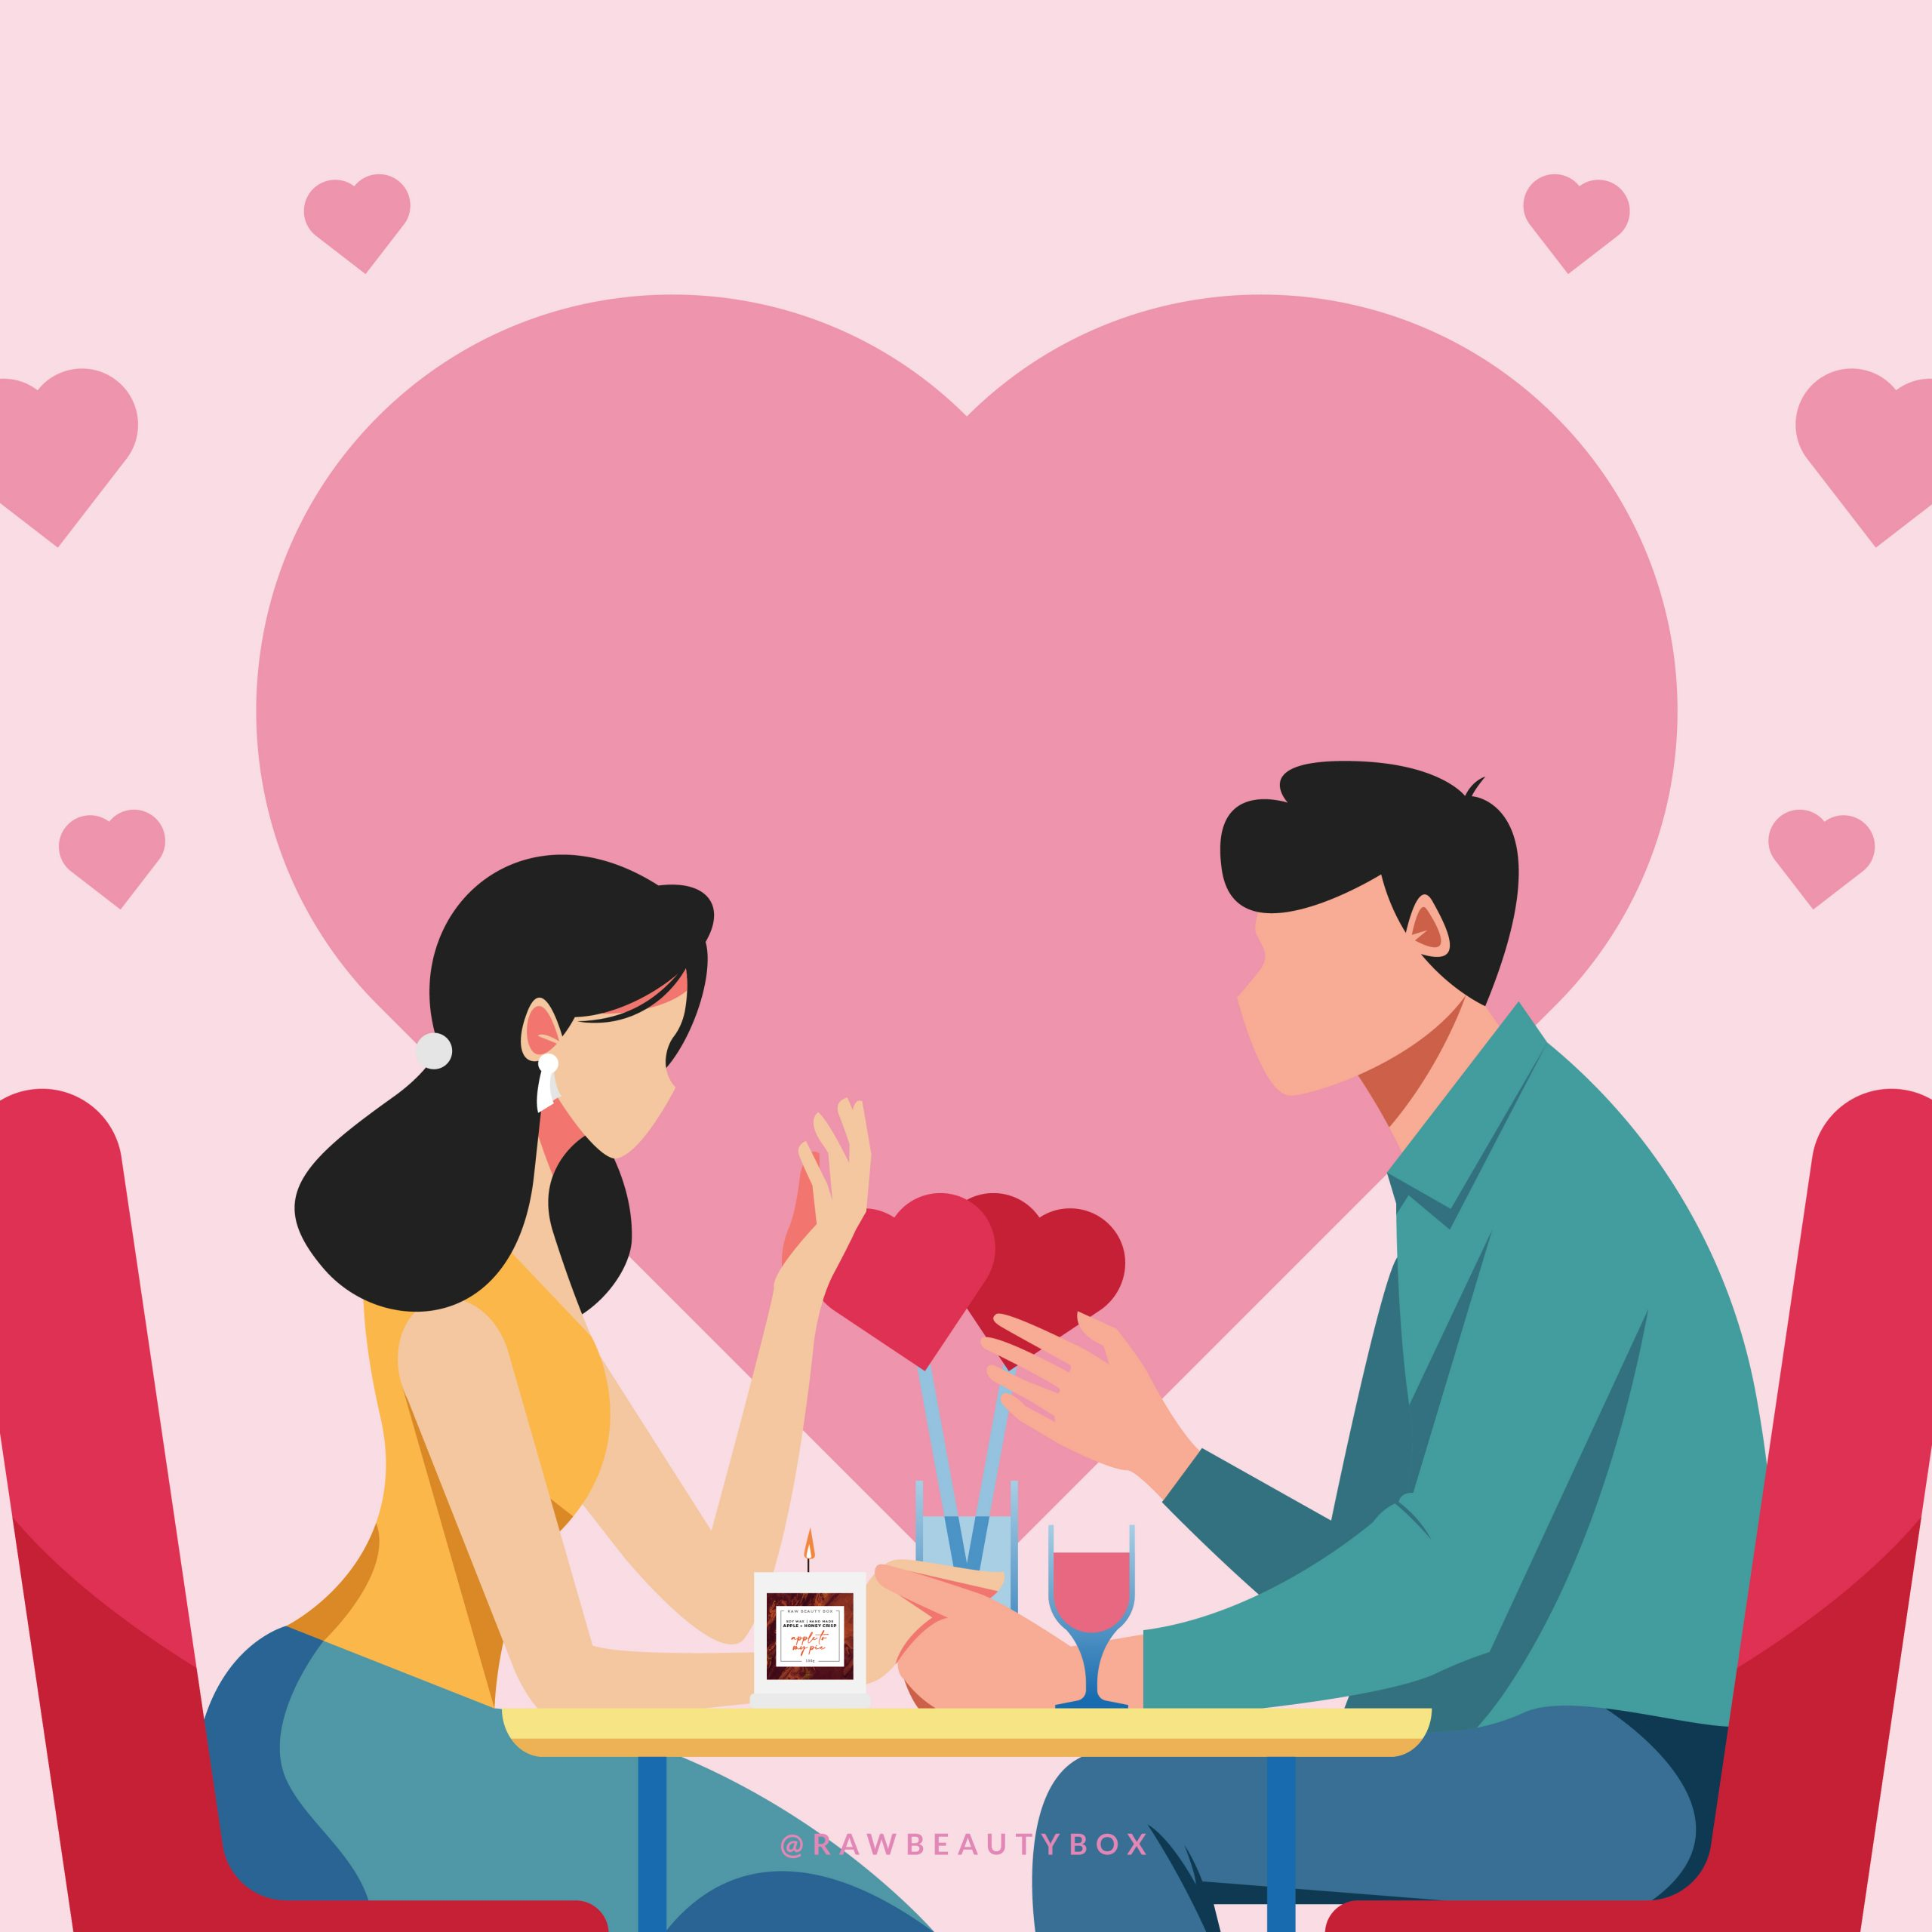 Couples Candle Date Illustration_Instagram Post